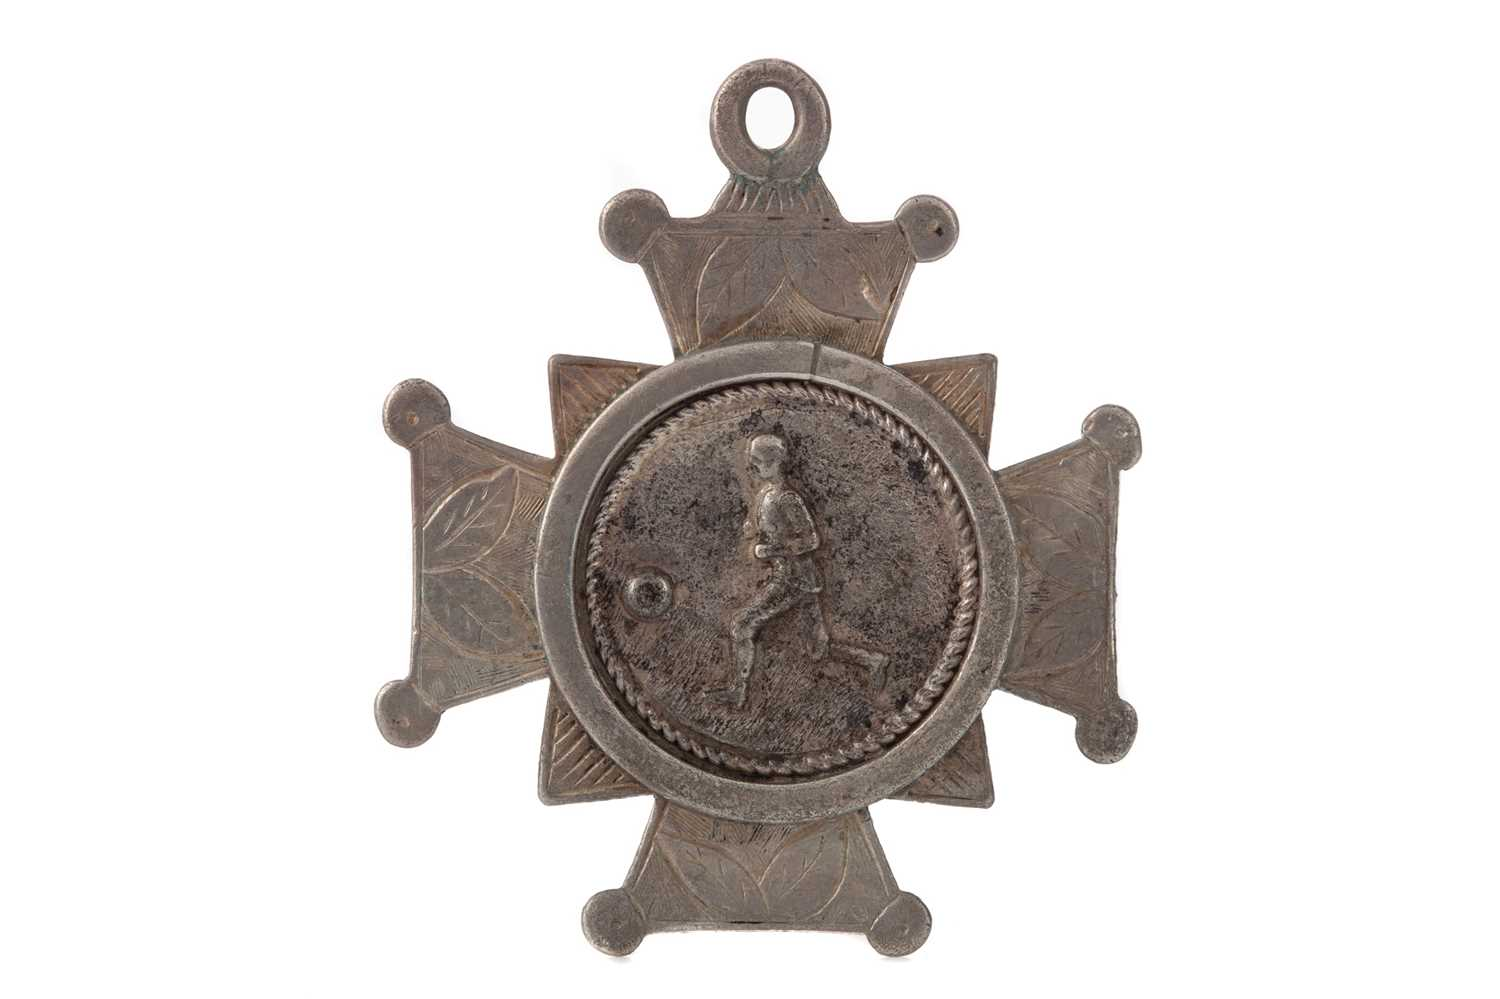 Lot A '5 A SIDE' FOOTBALLING SILVER MEDAL 1886